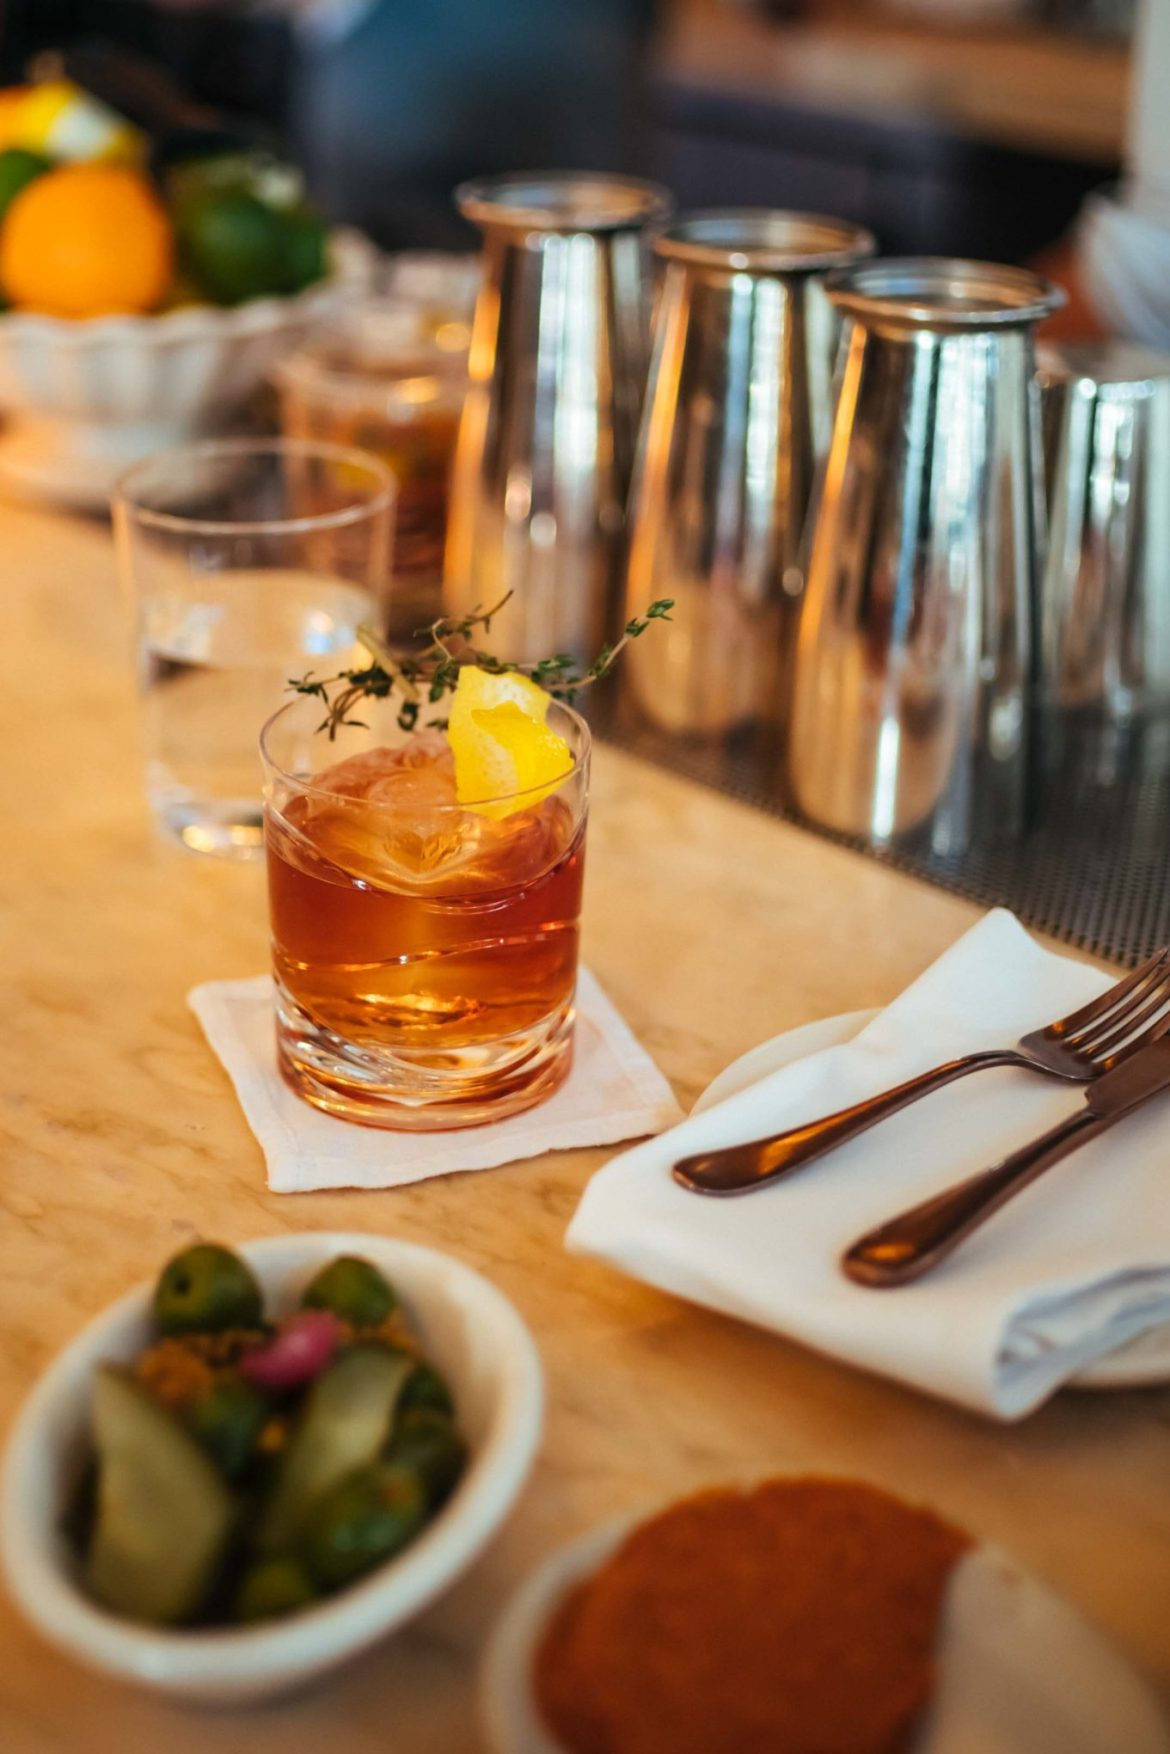 """The Taste Edit recommends for the best cocktails in Hollywood visit Chef Curtis Stone's Gwen in Los Angeles. For a twist on a Negroni, try the """"Negroni Reflection"""" made with Sloe Gin, Salers aperitif, thyme, amara, and raspberry"""